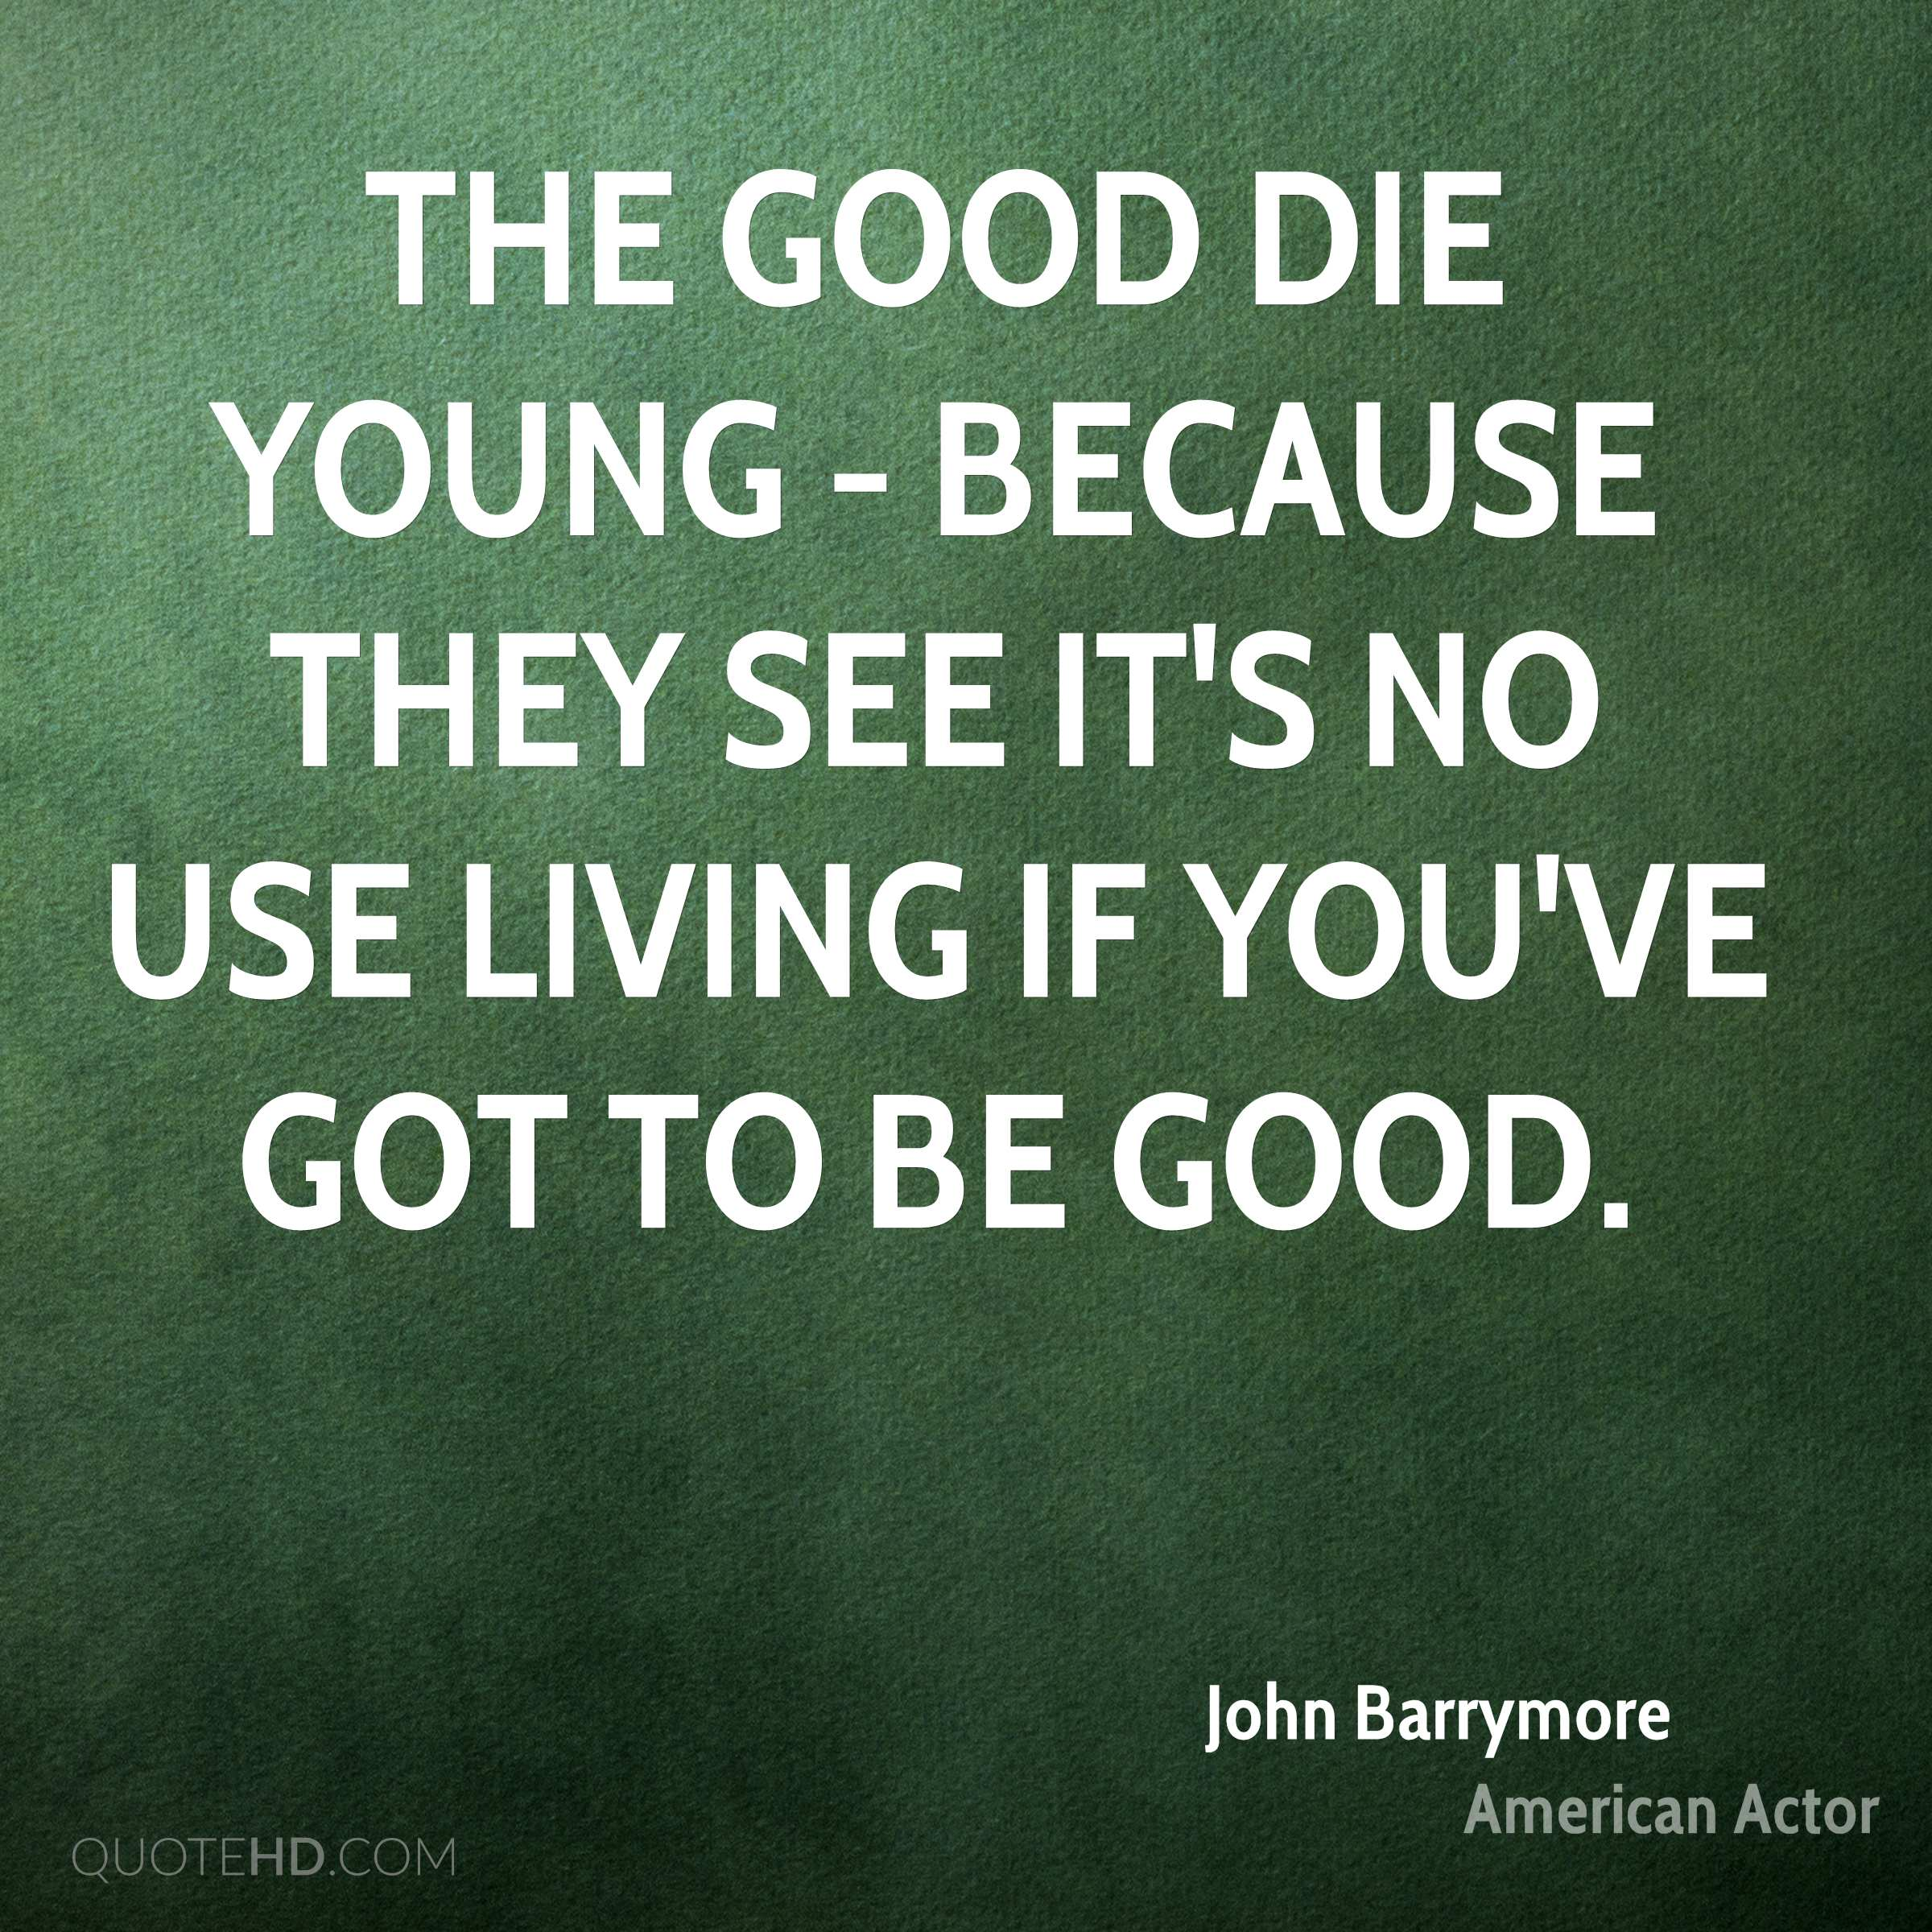 The good die young - because they see it's no use living if you've got to be good.